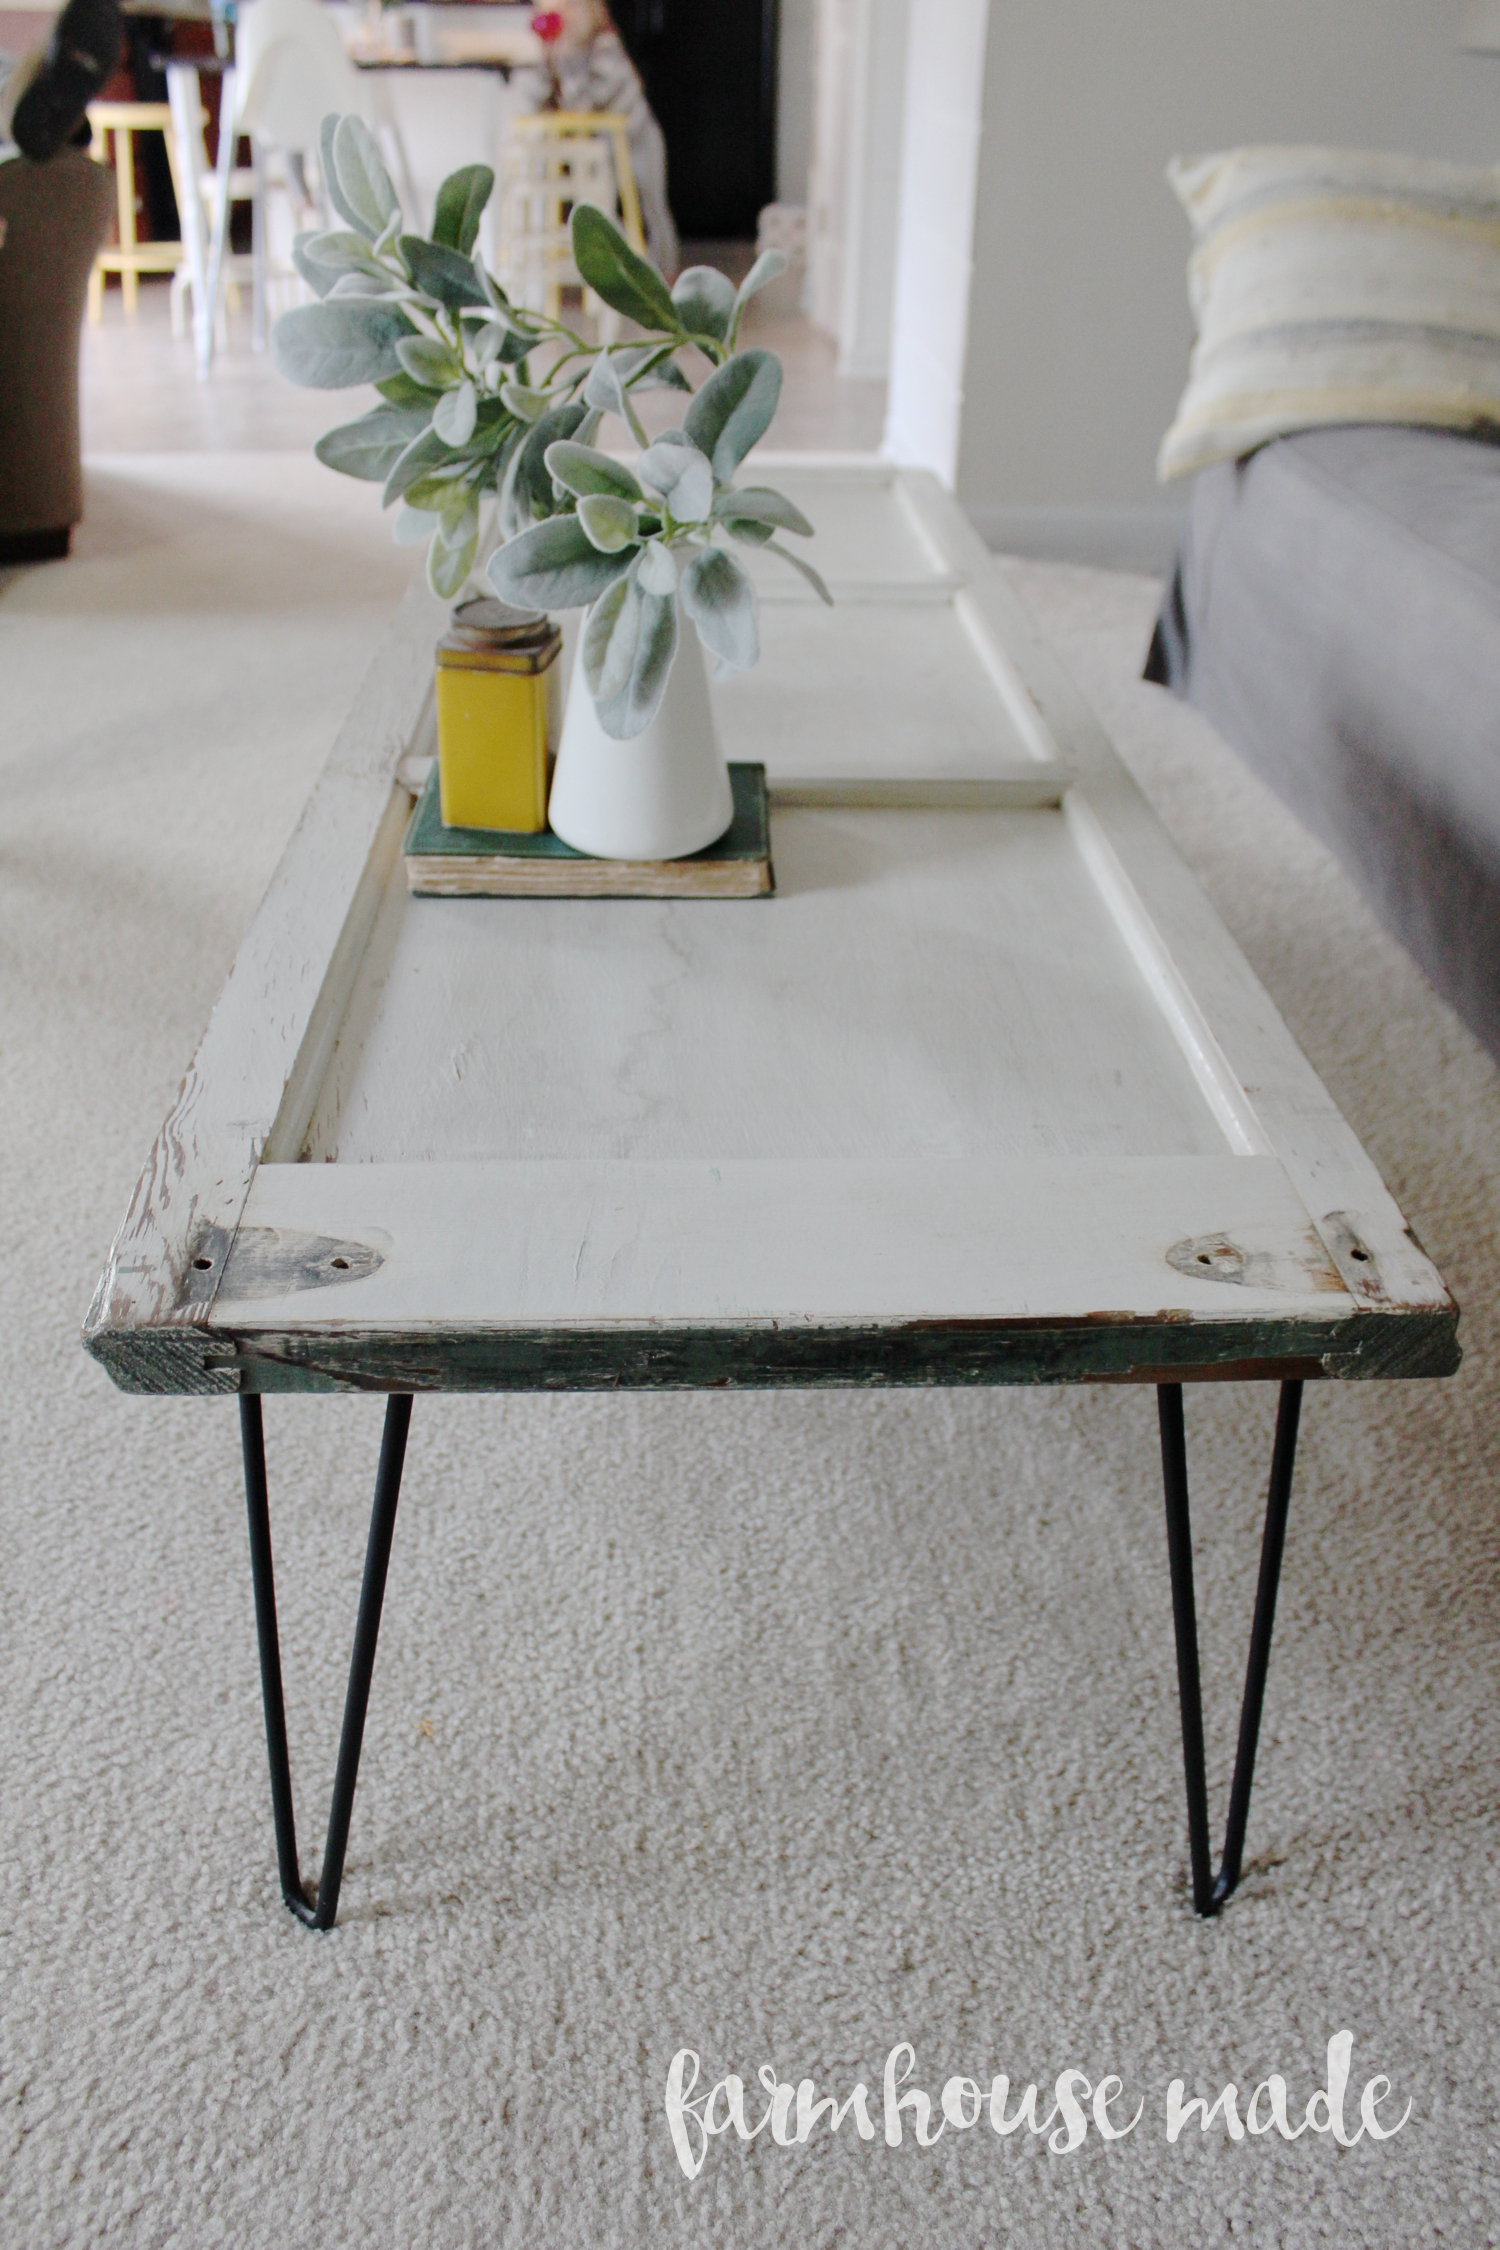 Top 5 DIYs To Add Farmhouse Style Made